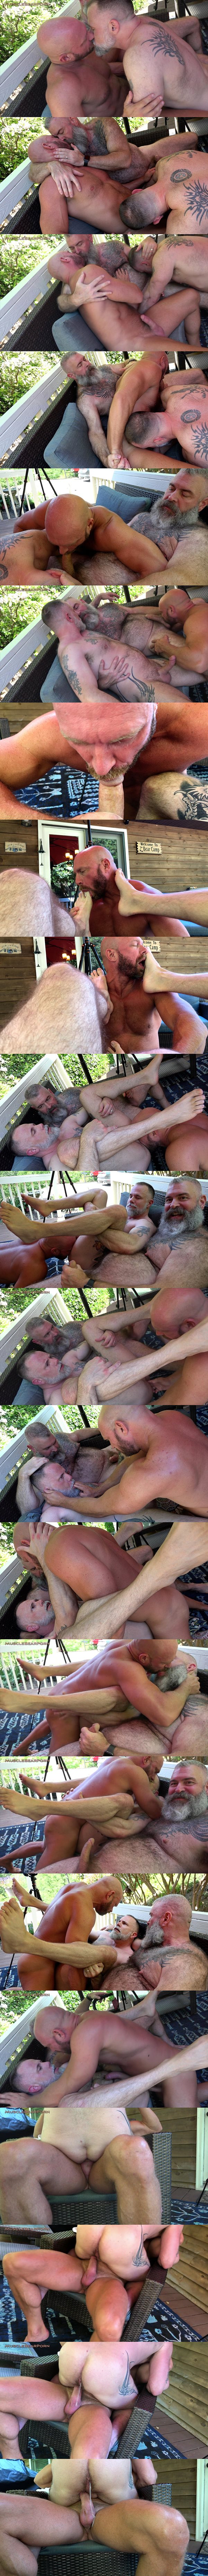 Muscle daddy Killian Knox and real bear couple Liam Angell and Will Angell have a raw threesome before Killian barebacks and creampies Liam in Feed Me at Musclebearporn 01